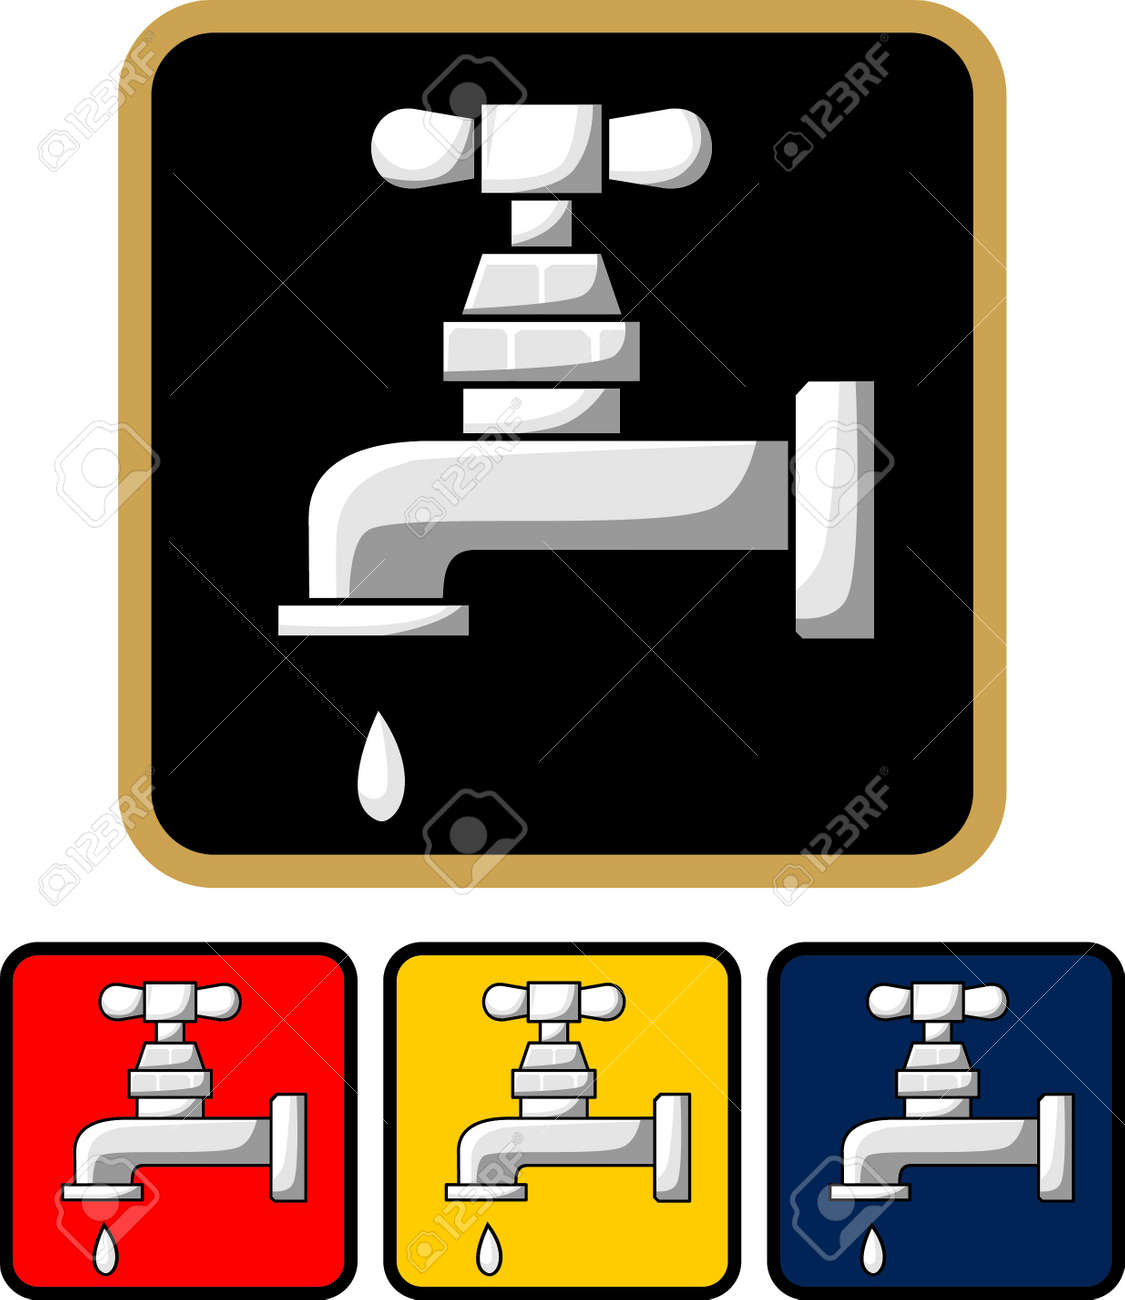 Water tap icon - illustration Stock Vector - 18869835